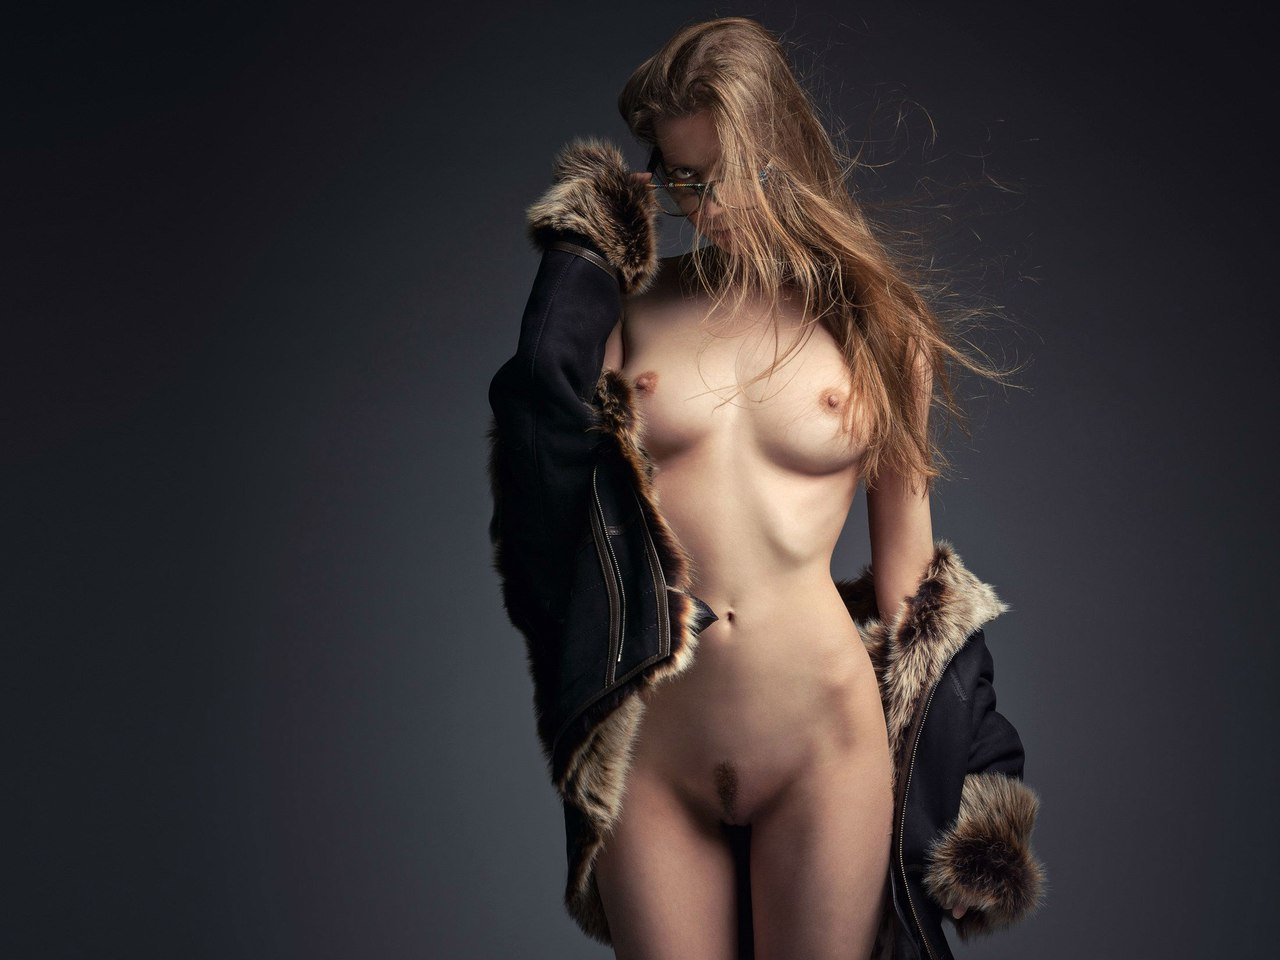 Erotic Postcards By William Ouelette